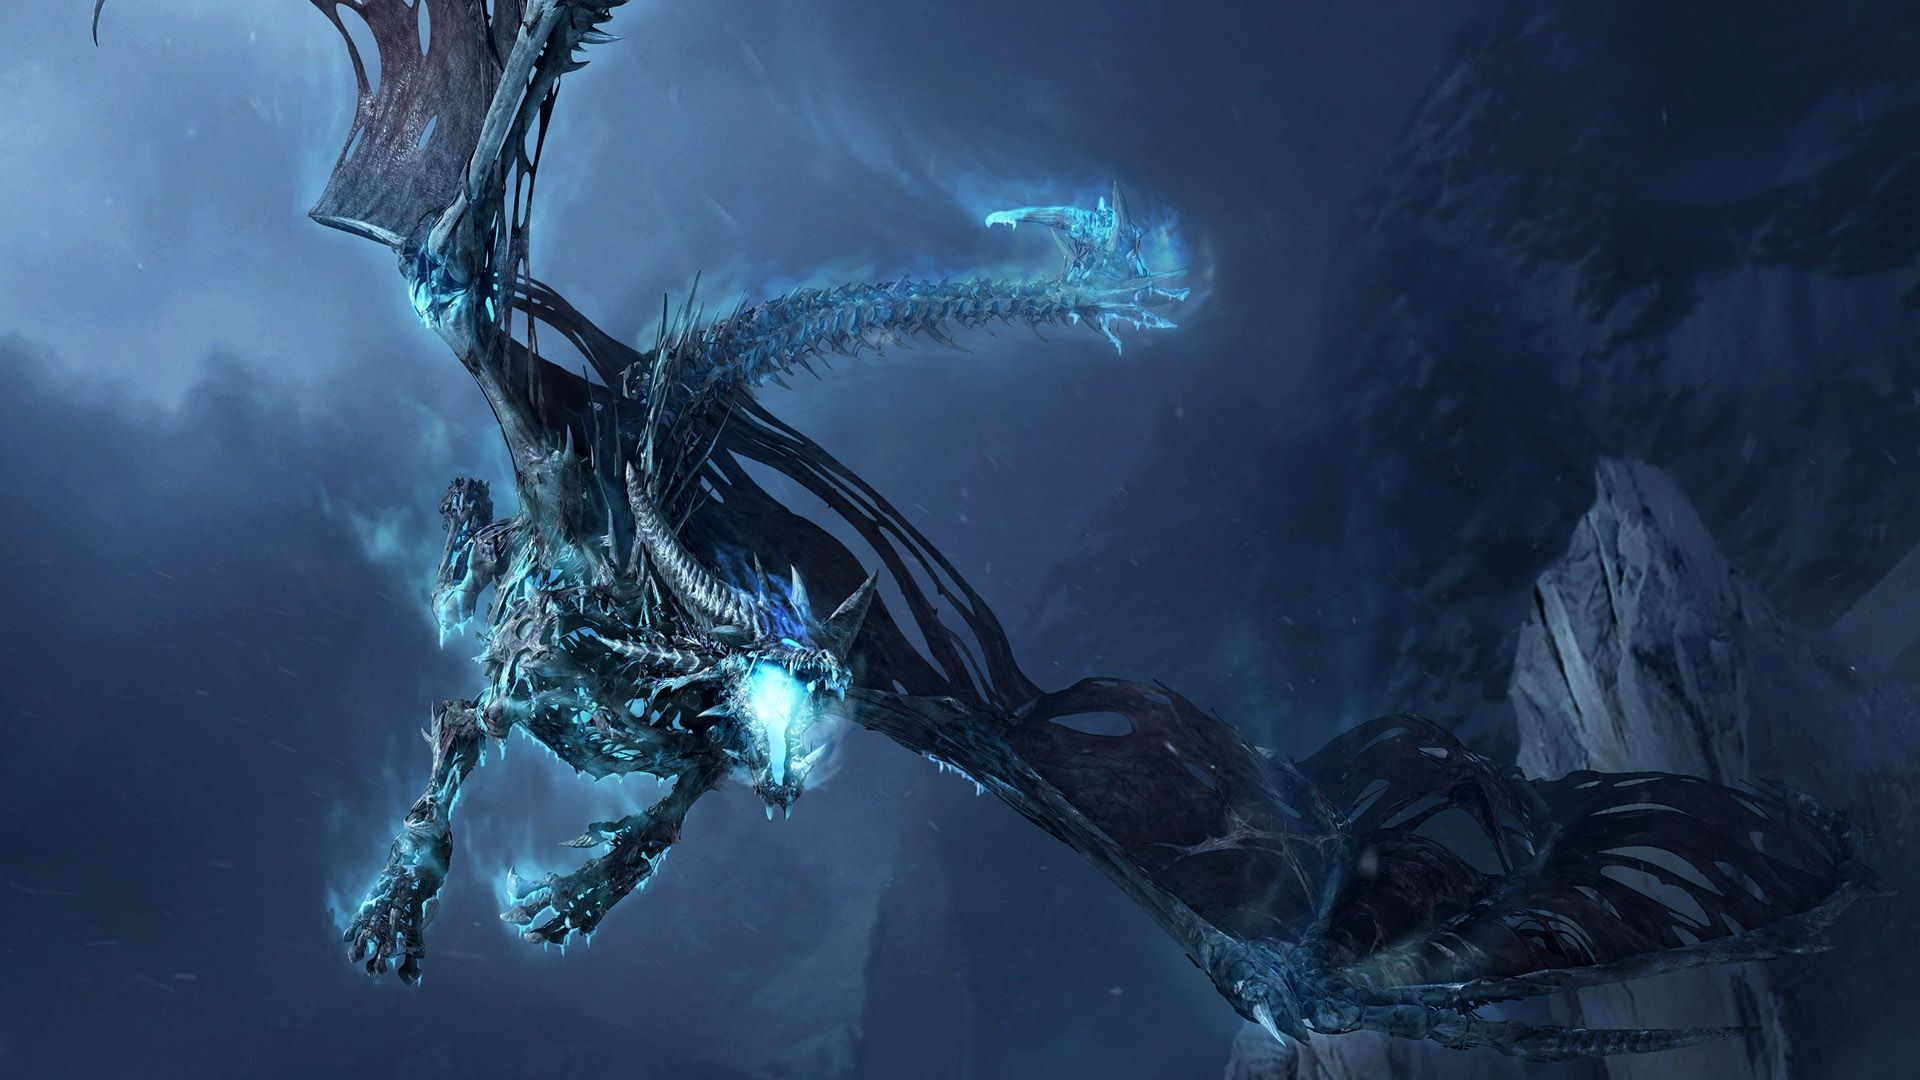 1920x1080 Wallpaper World Of Warcraft Dragon Cold